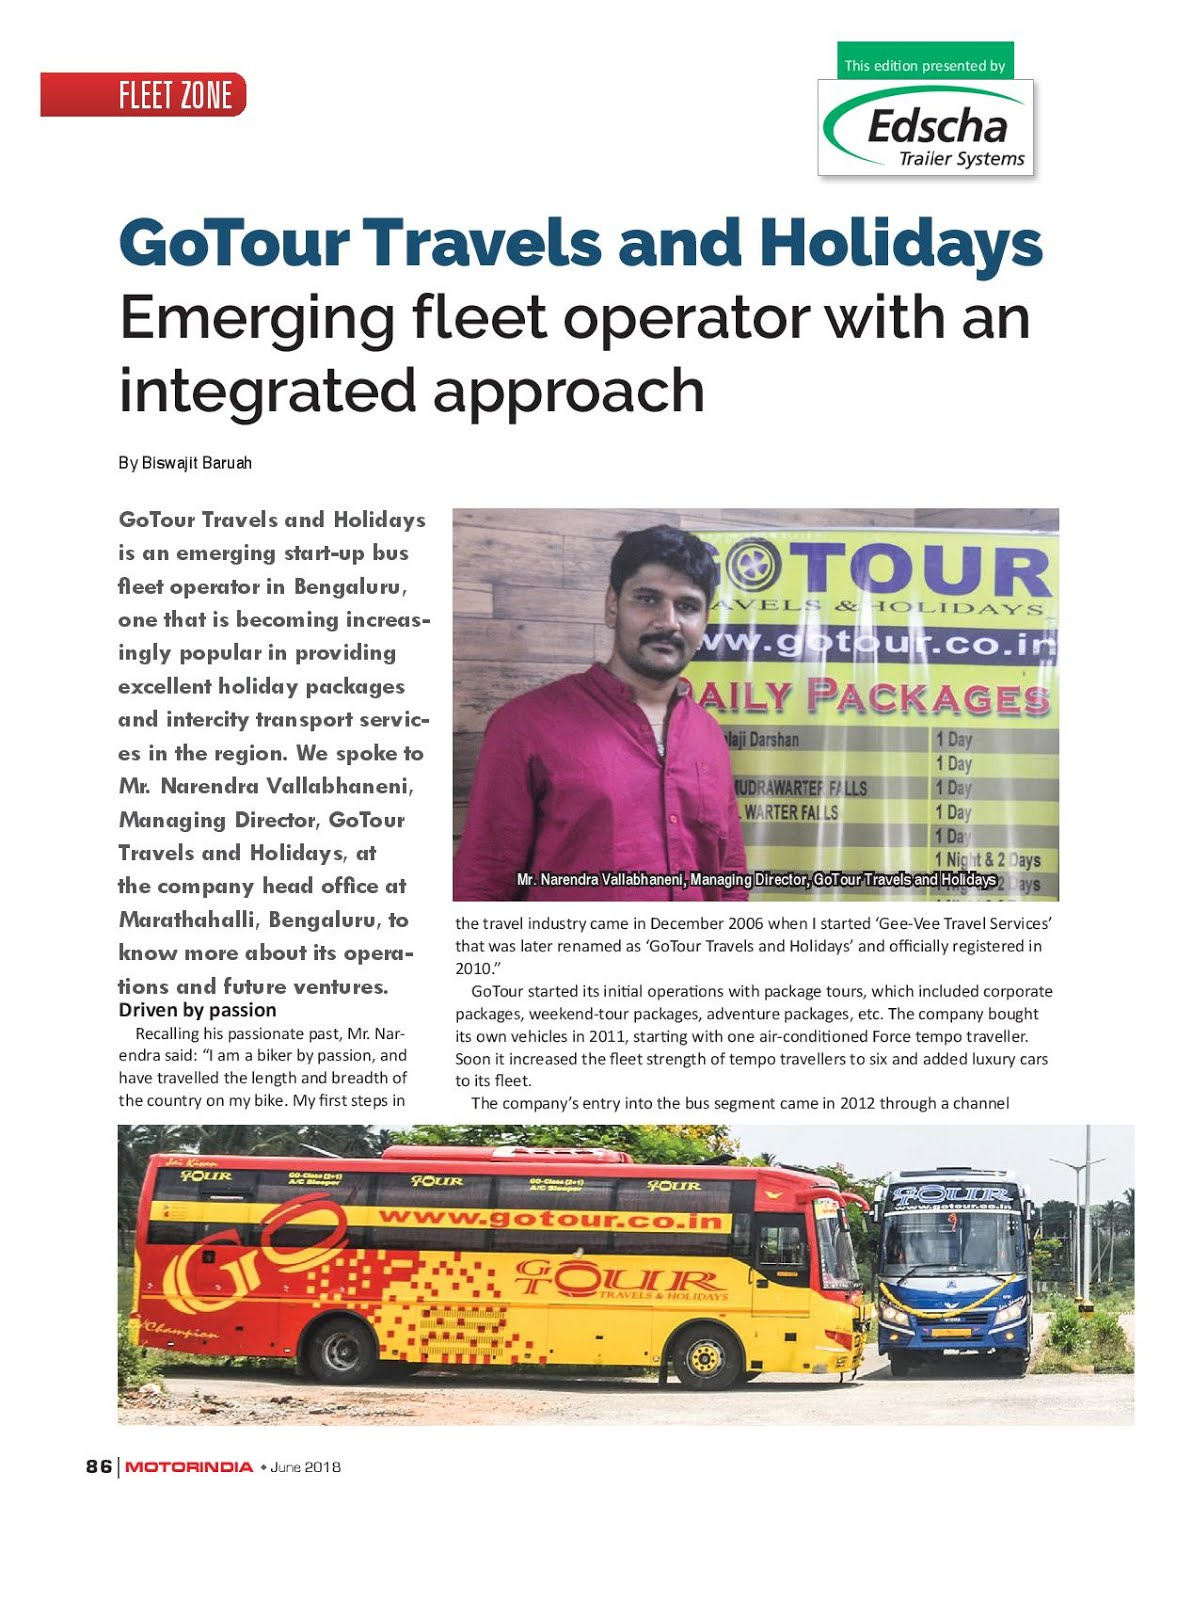 MOTOR INDIA ARTICLE 27 : GO TOUR